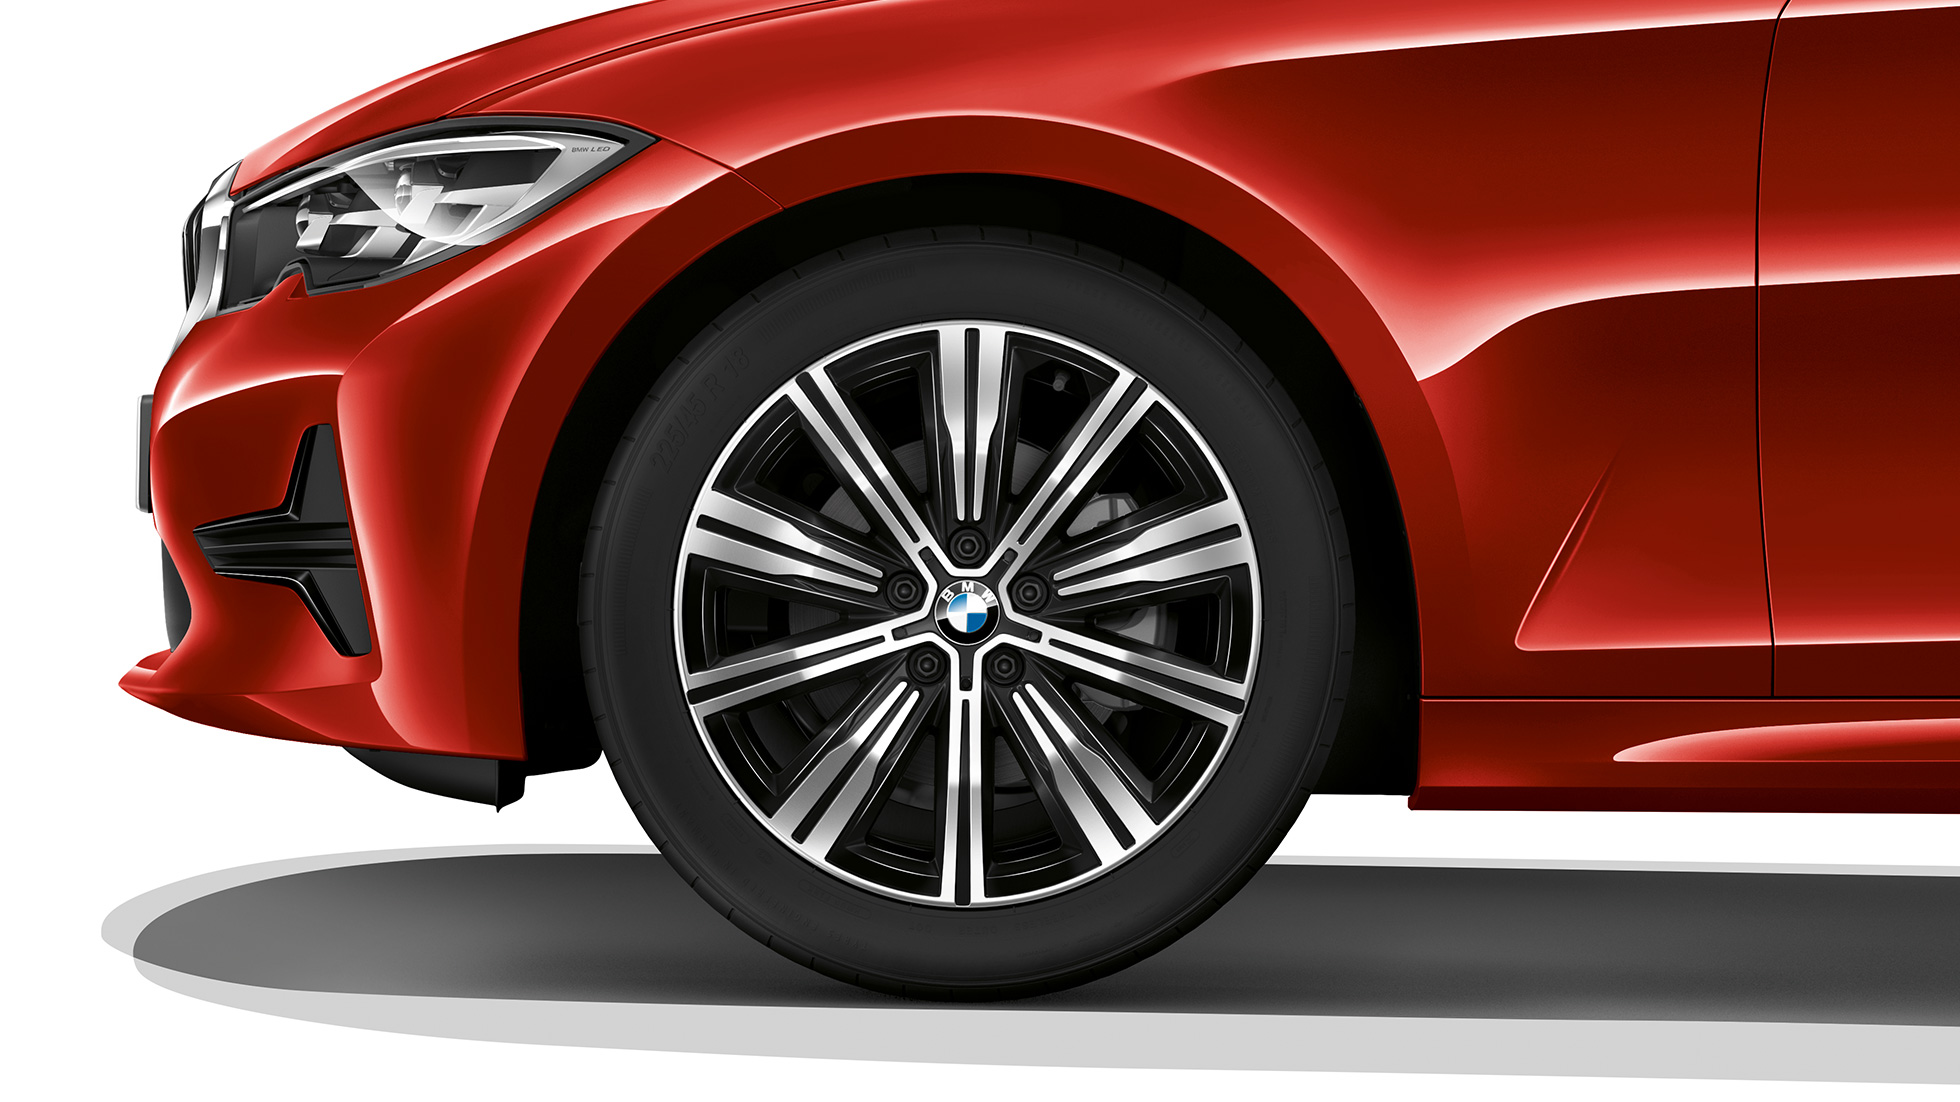 Close-up of the light alloy wheel of the BMW 3 Series Sedan with model Advantage features.